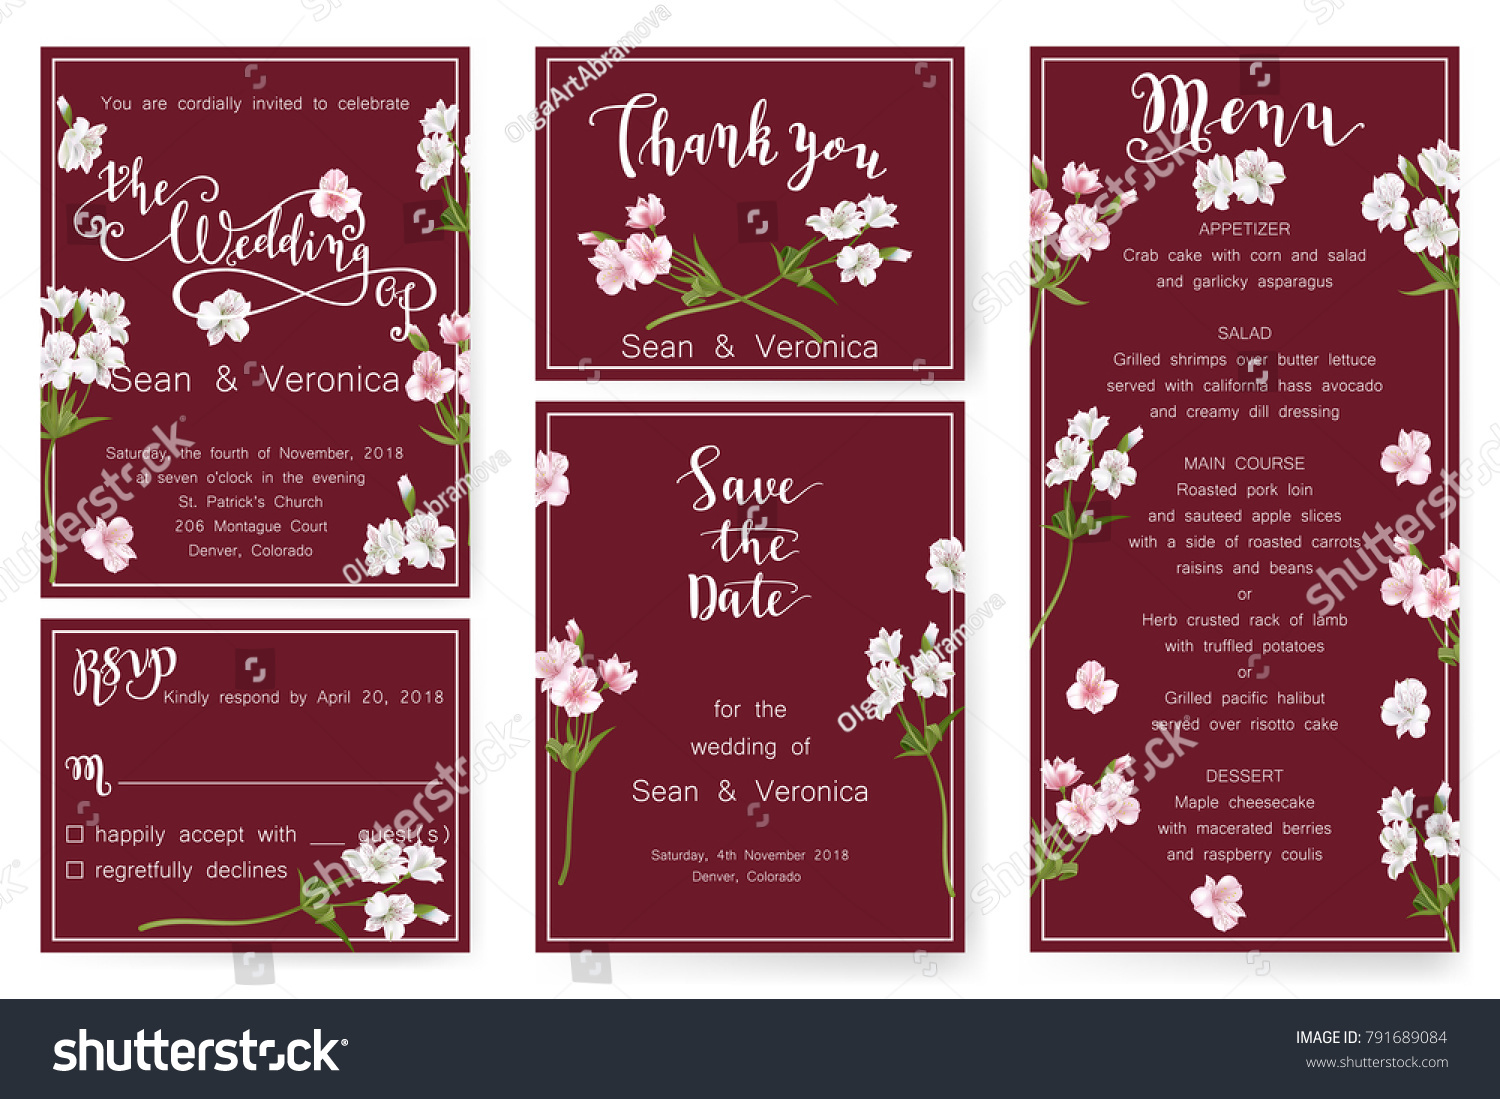 Save Date Card Wedding Invitation Greeting Stock Vector (Royalty ...